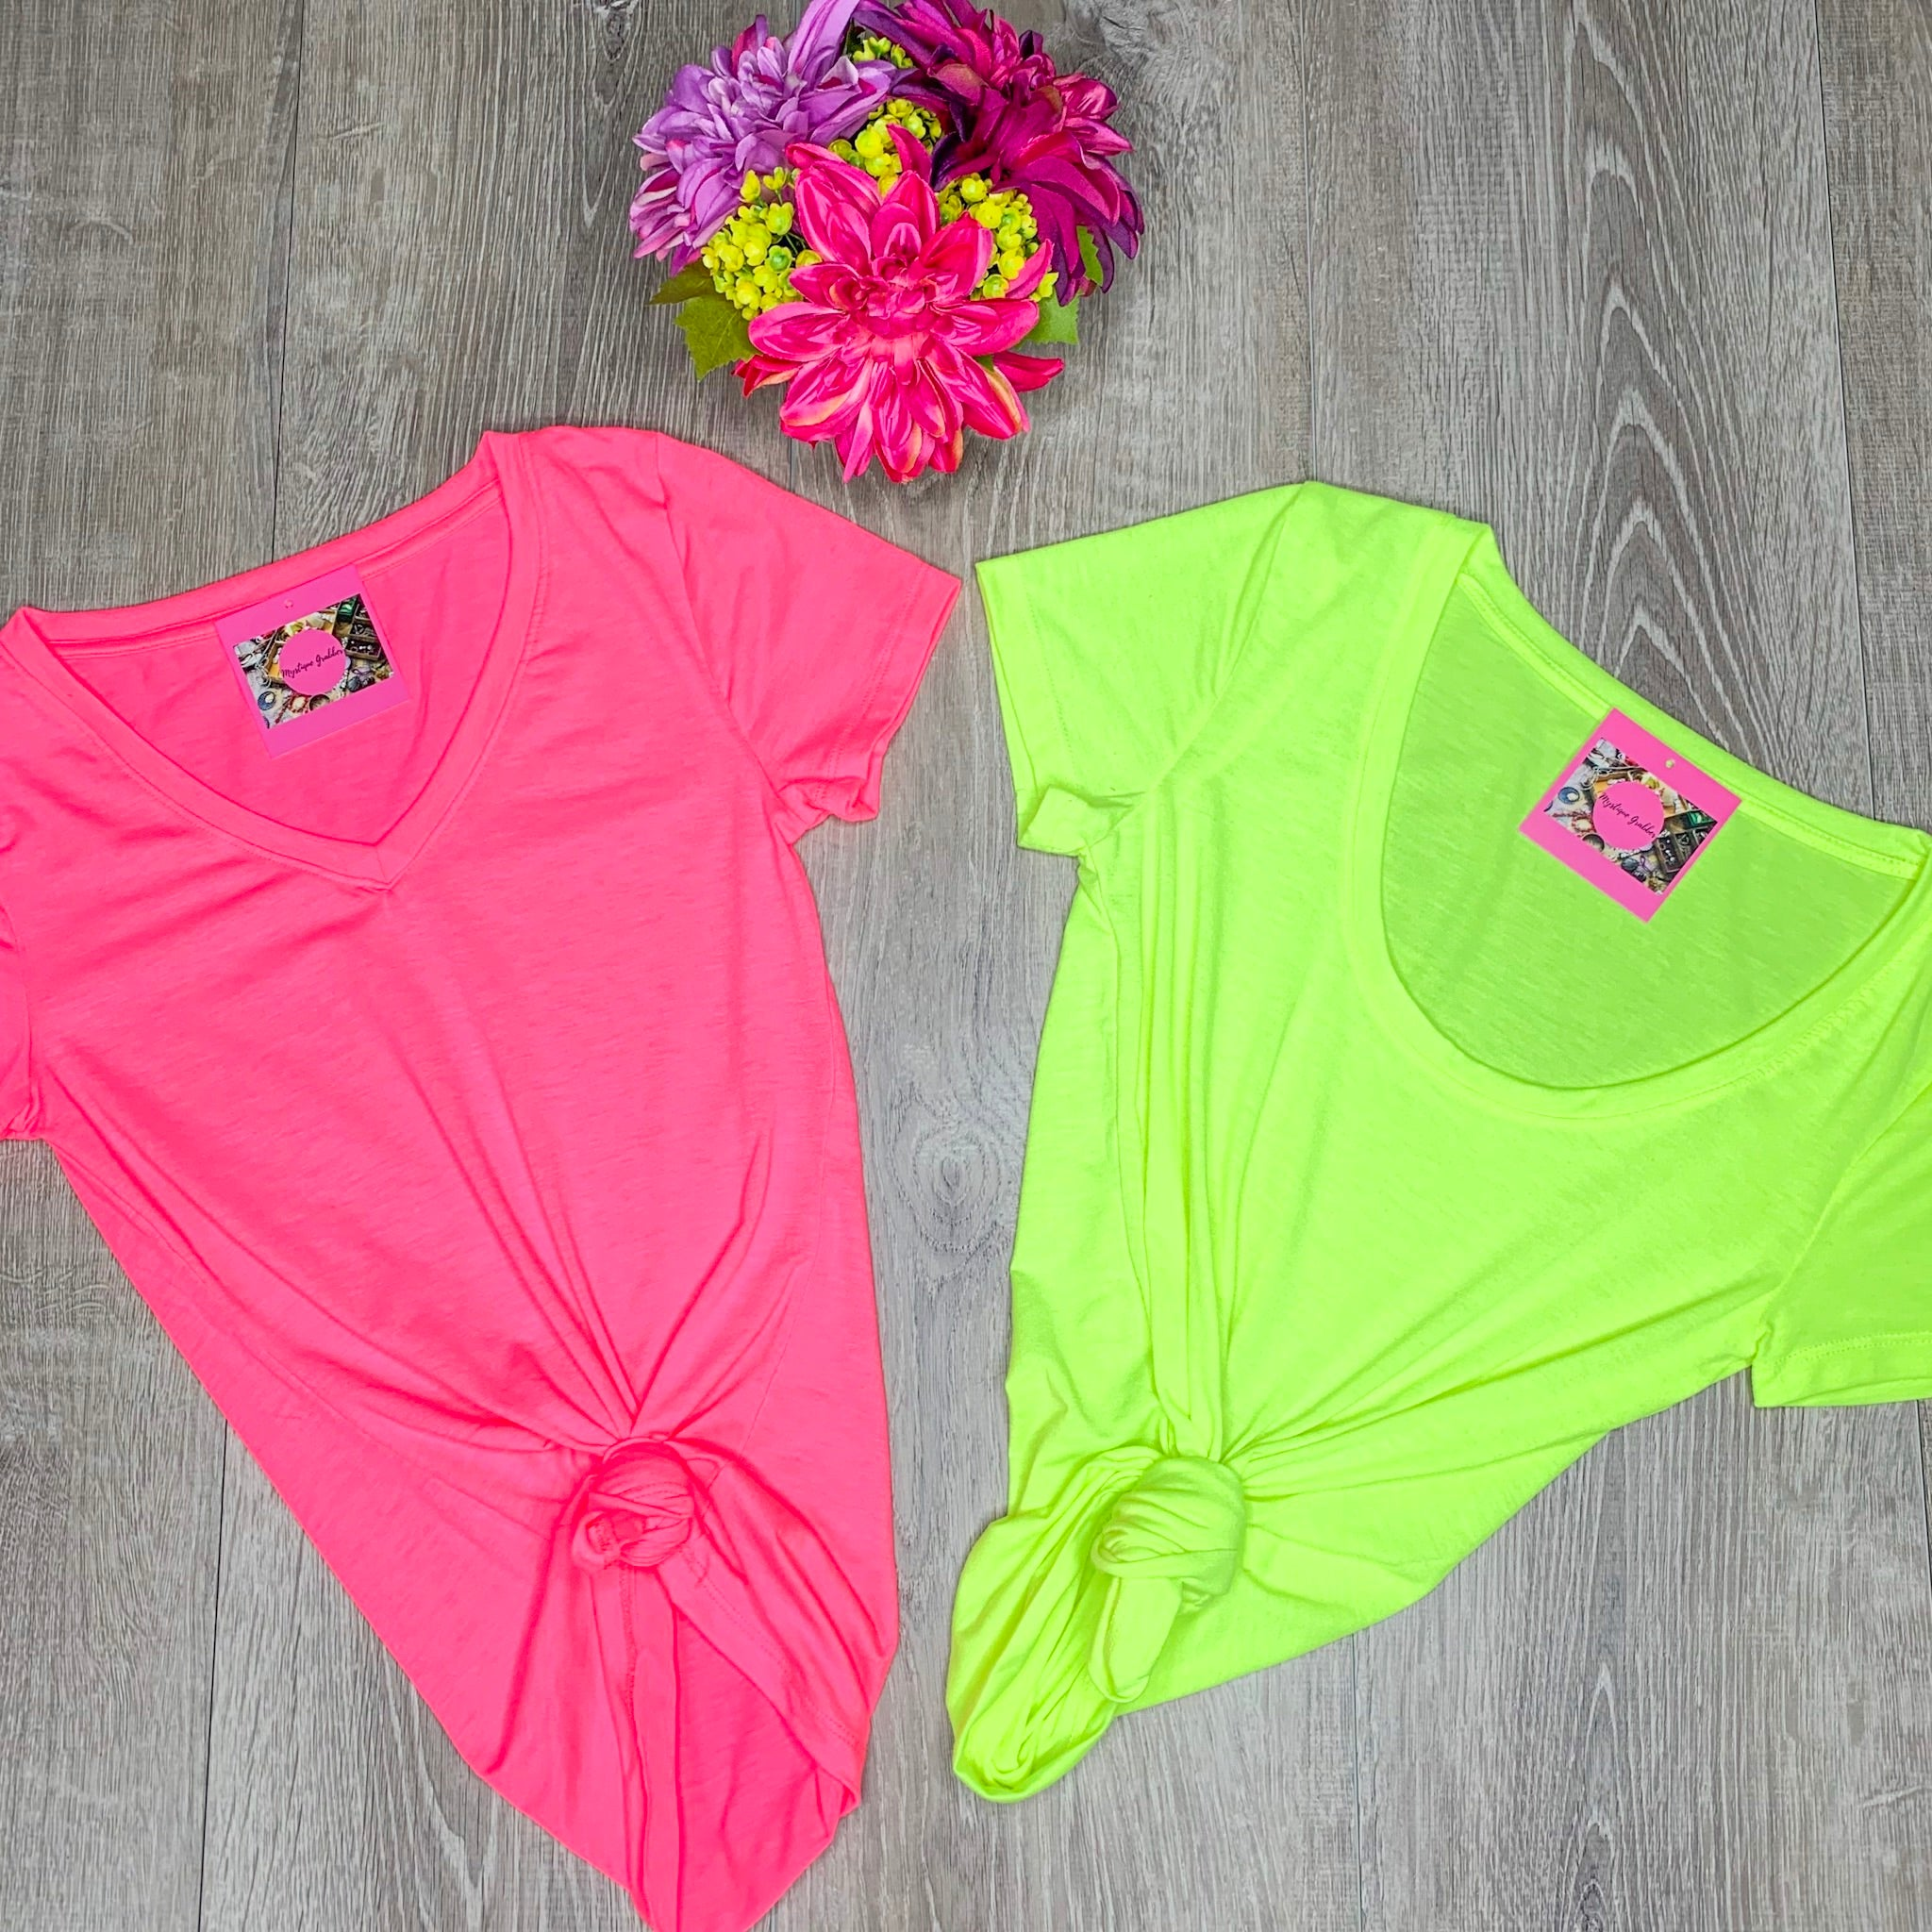 Glow Scoop Neck Top - Neon Green (S&M)